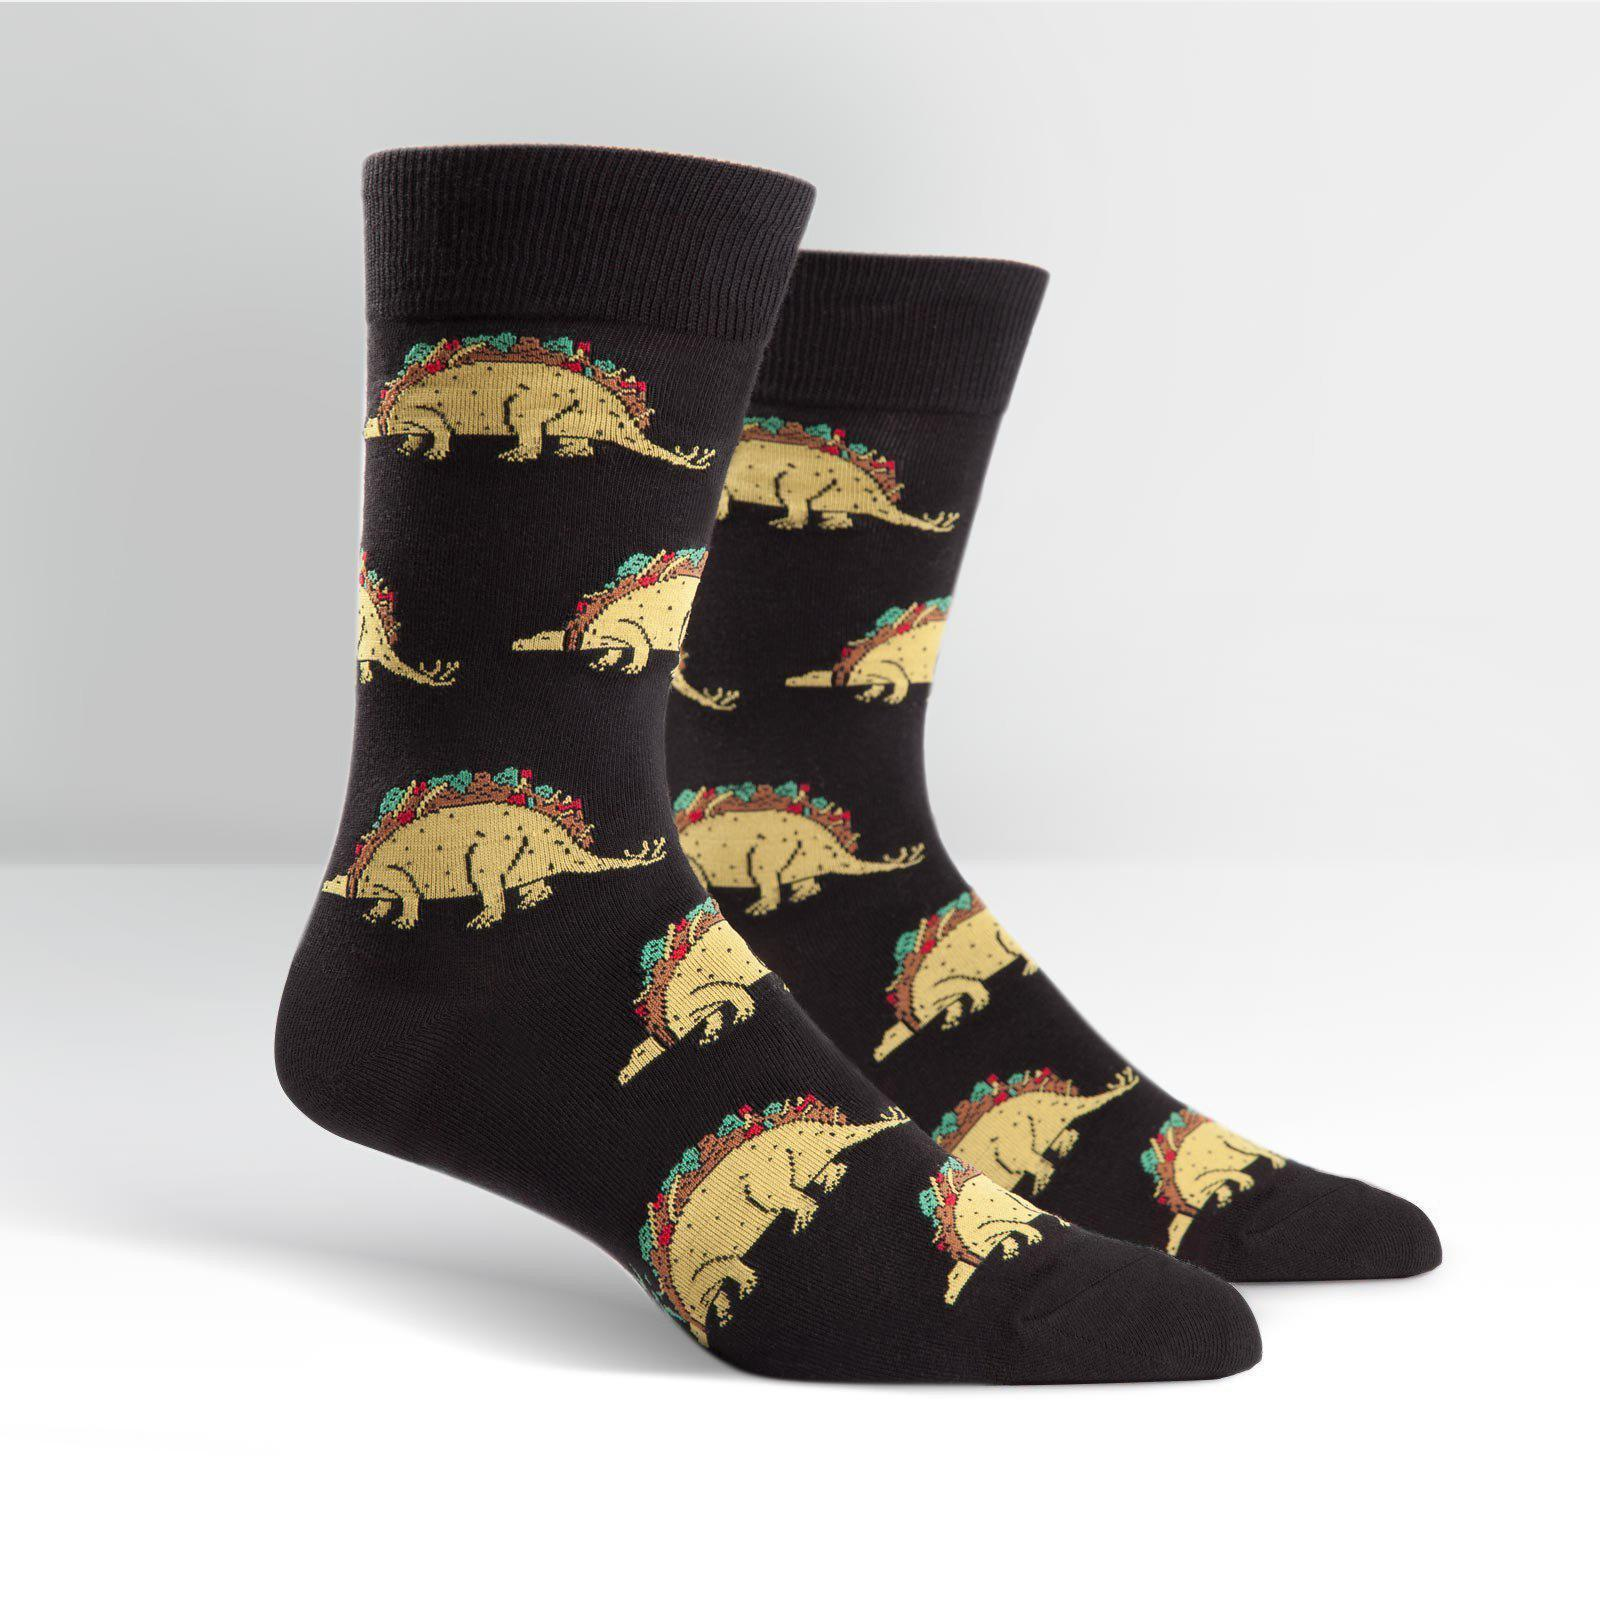 Sock It To Me - Tacosaurus Crew Socks | Men's - Knock Your Socks Off